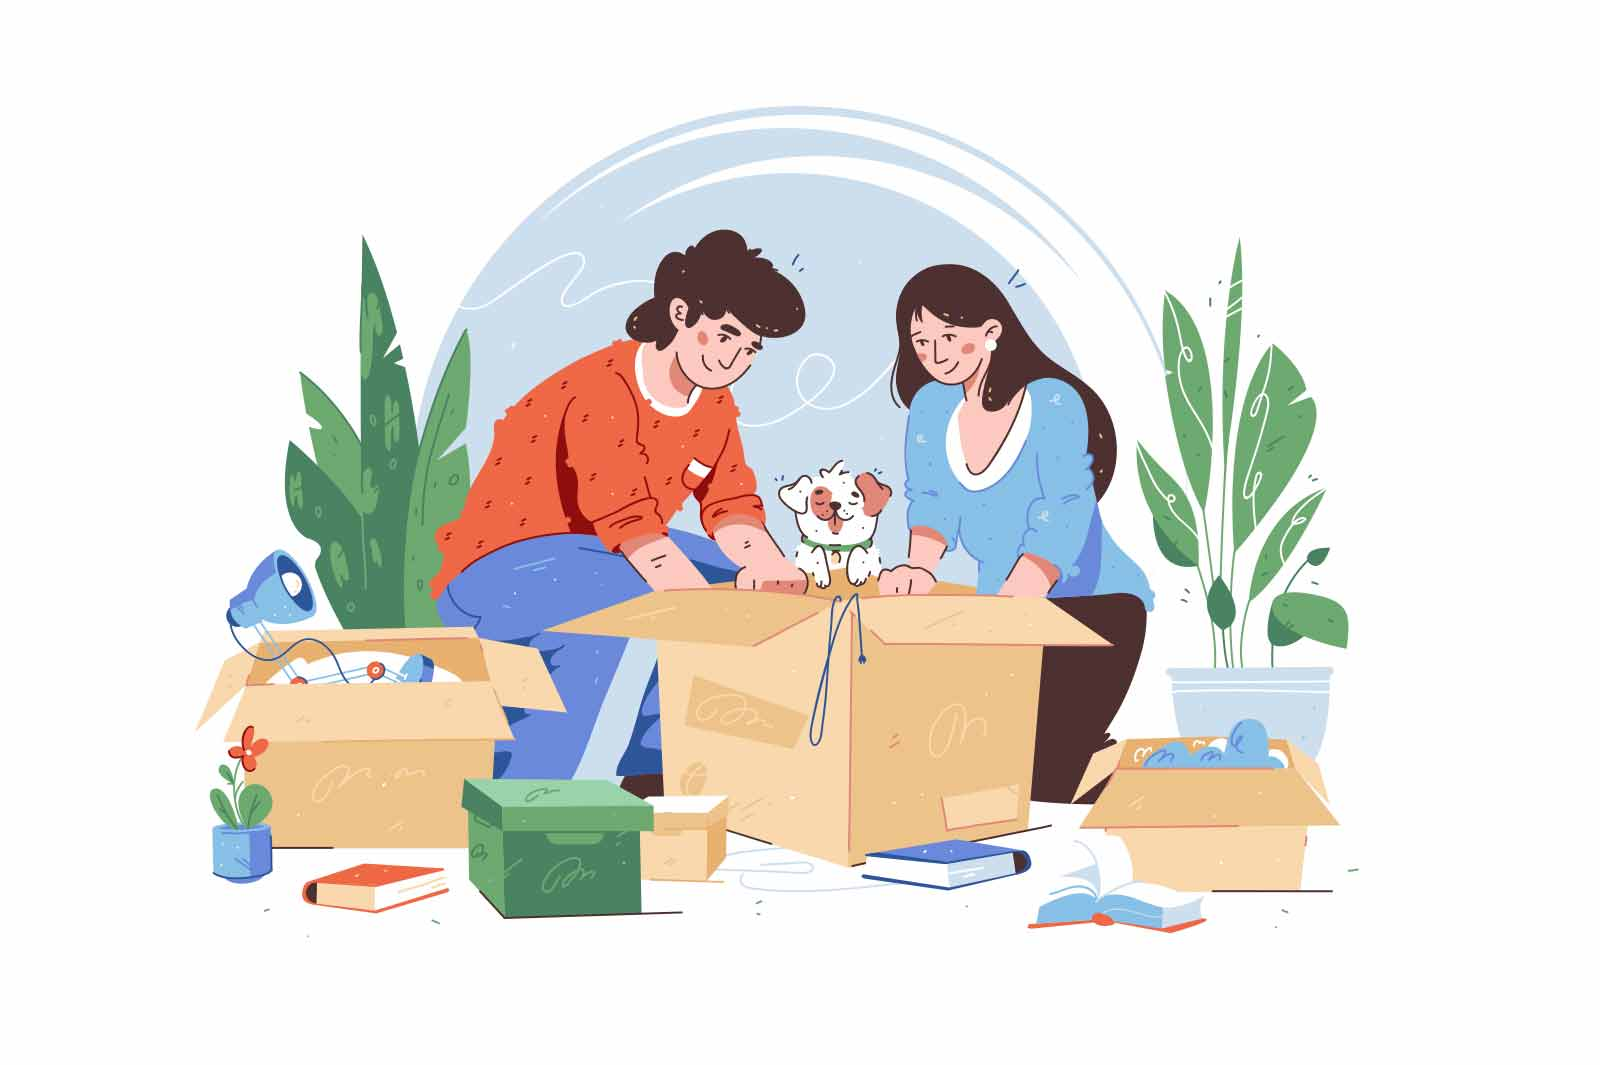 Moving guy and girl packing stuff in boxes vector illustration. Take dog pet with them to new living place flat style. Movement, relocation concept